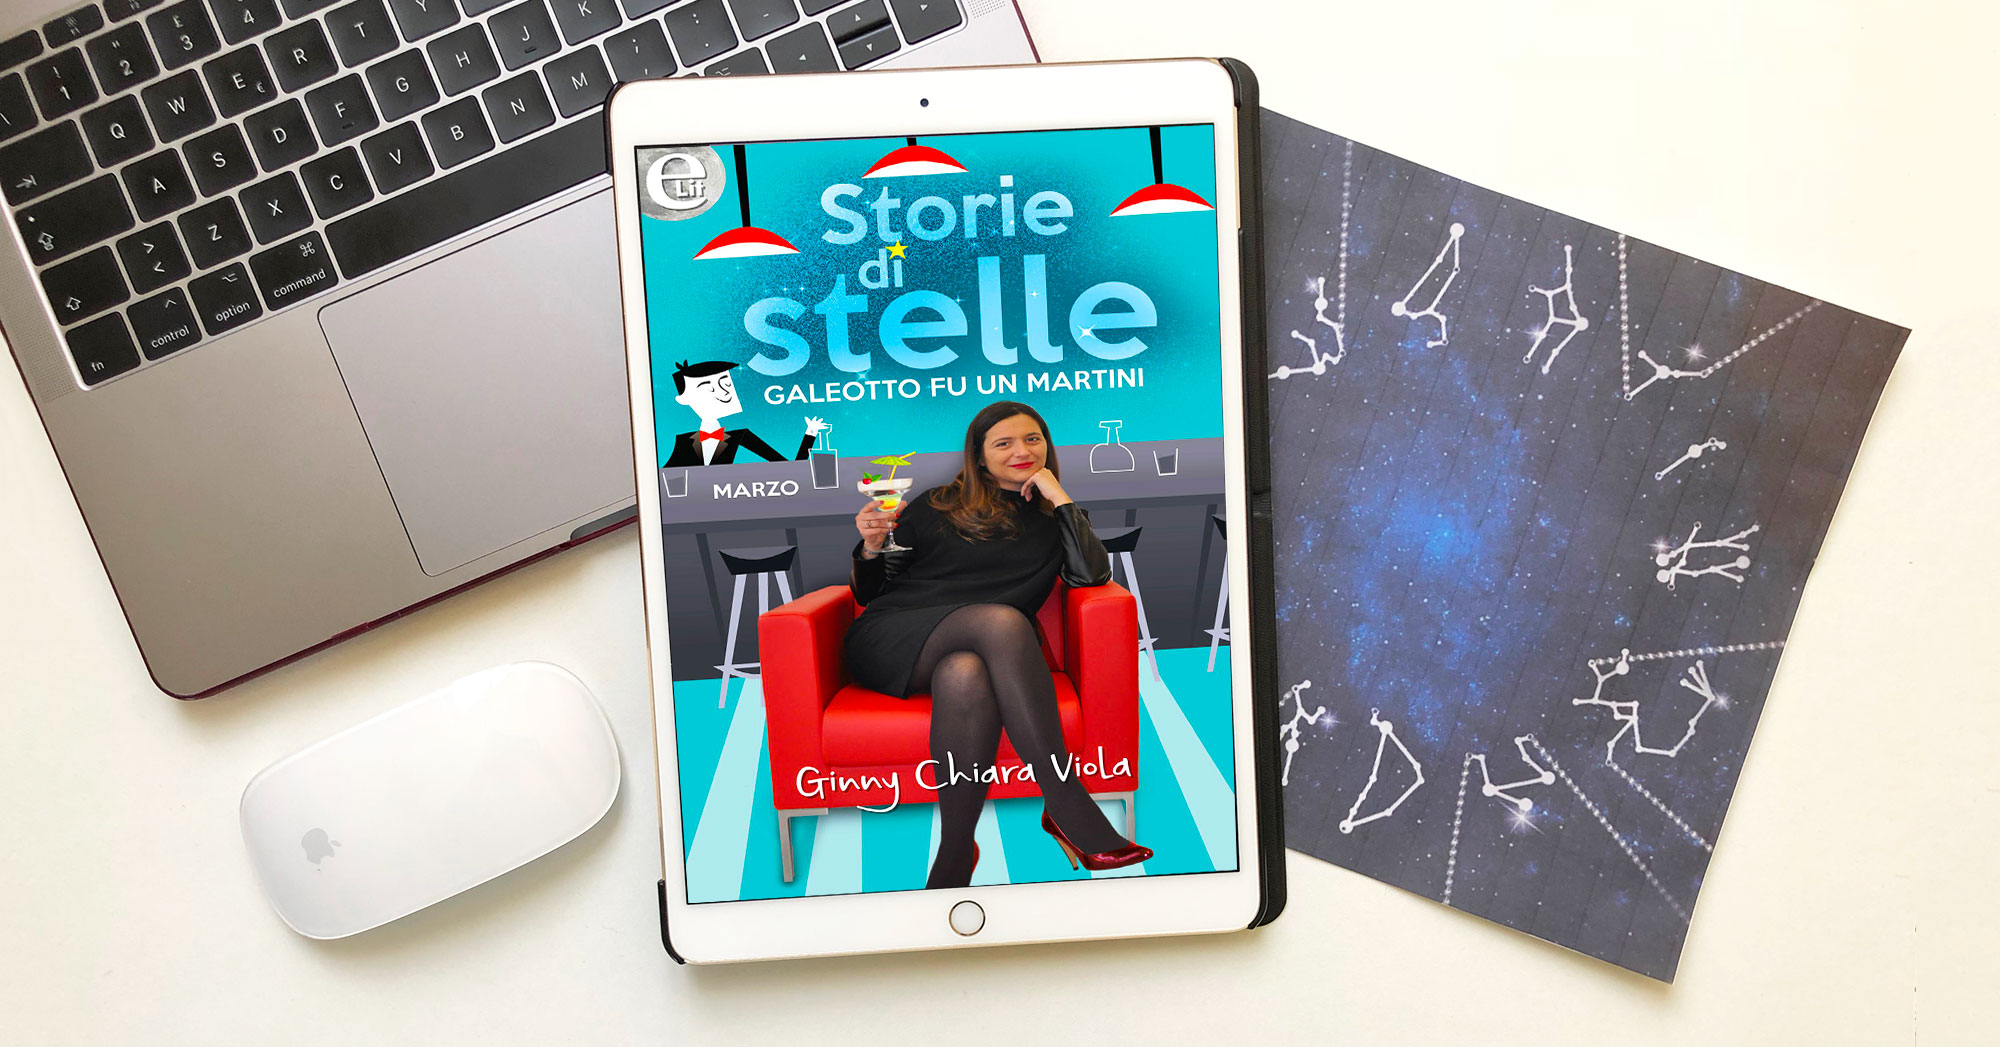 Storie di stelle